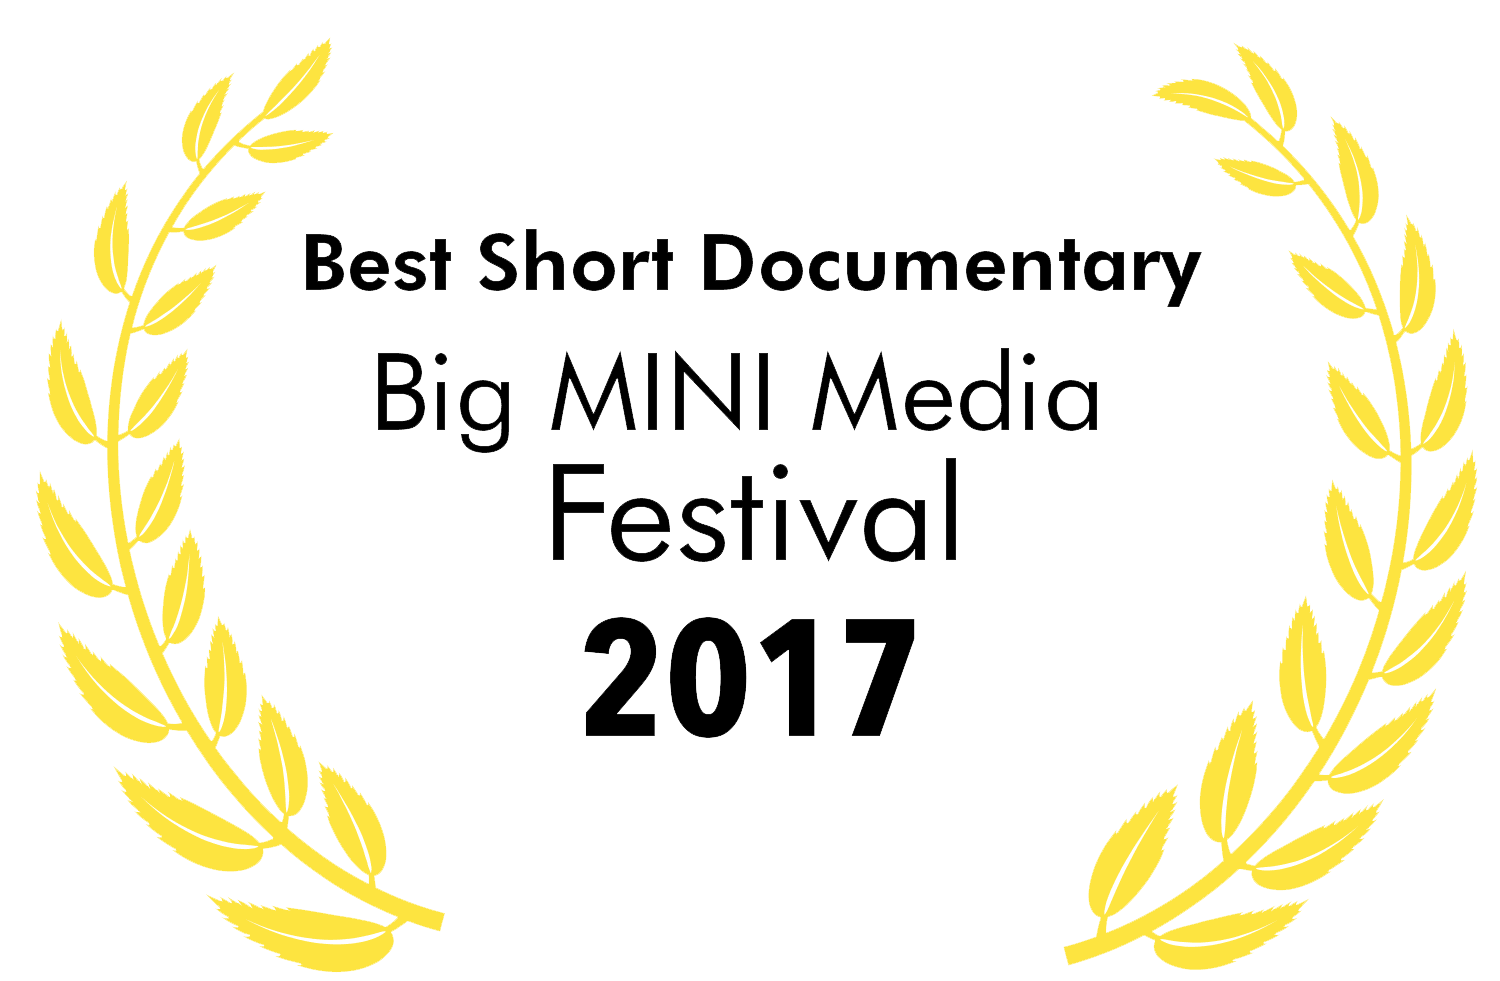 Best Short Documentary!